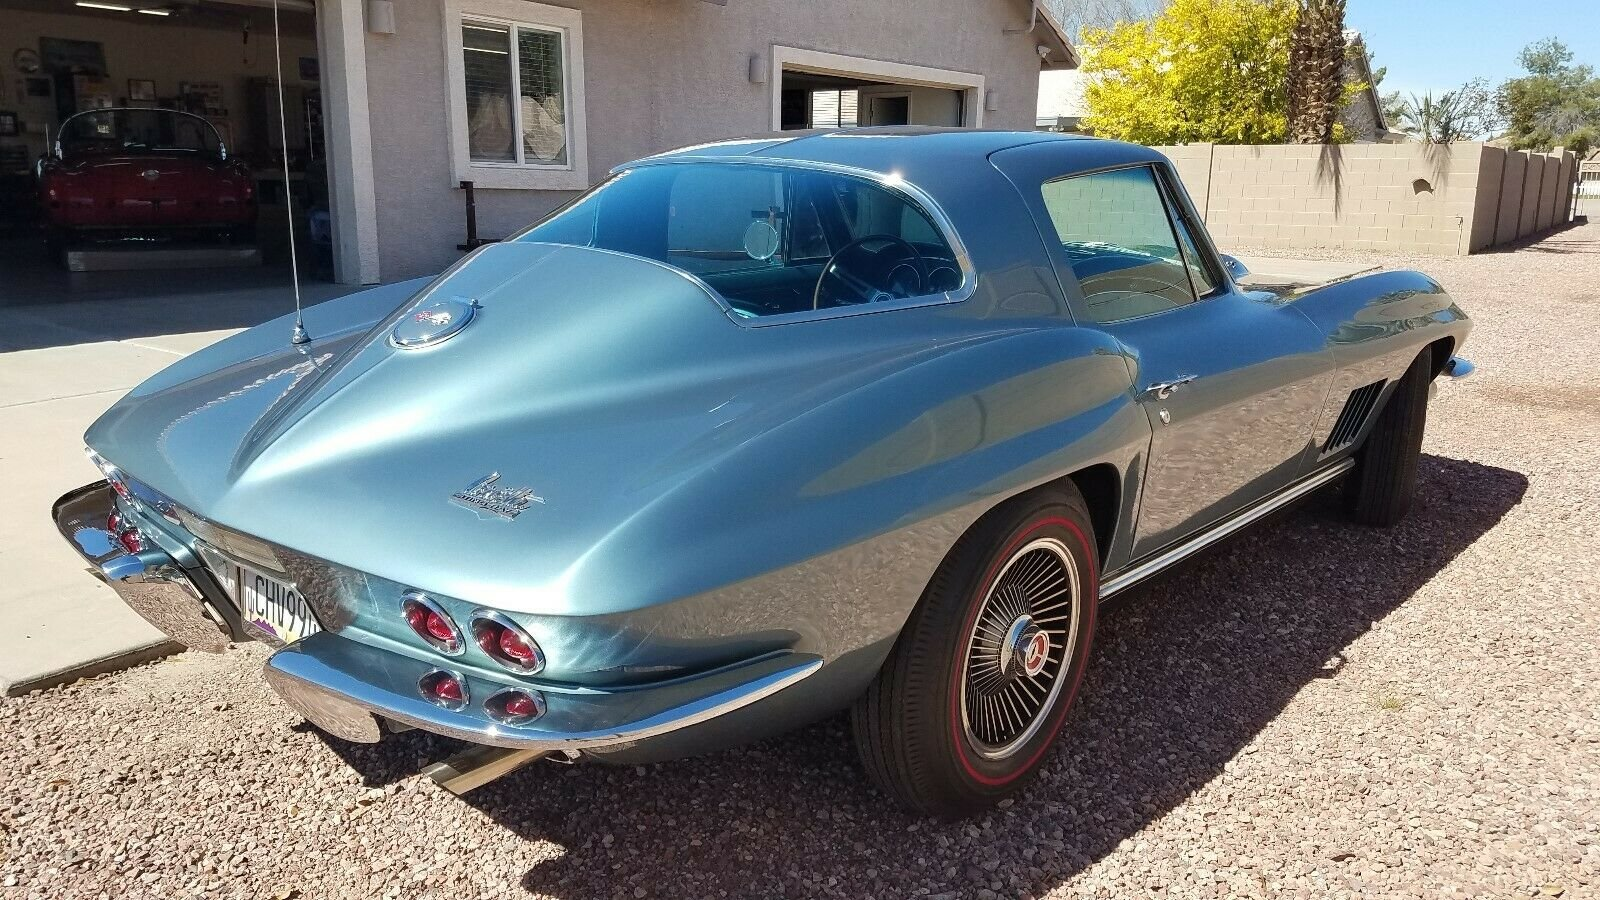 1967 Corvette coupe L71 427cui V8 - Tri carb 4 speed ! For Sale (picture 3 of 6)